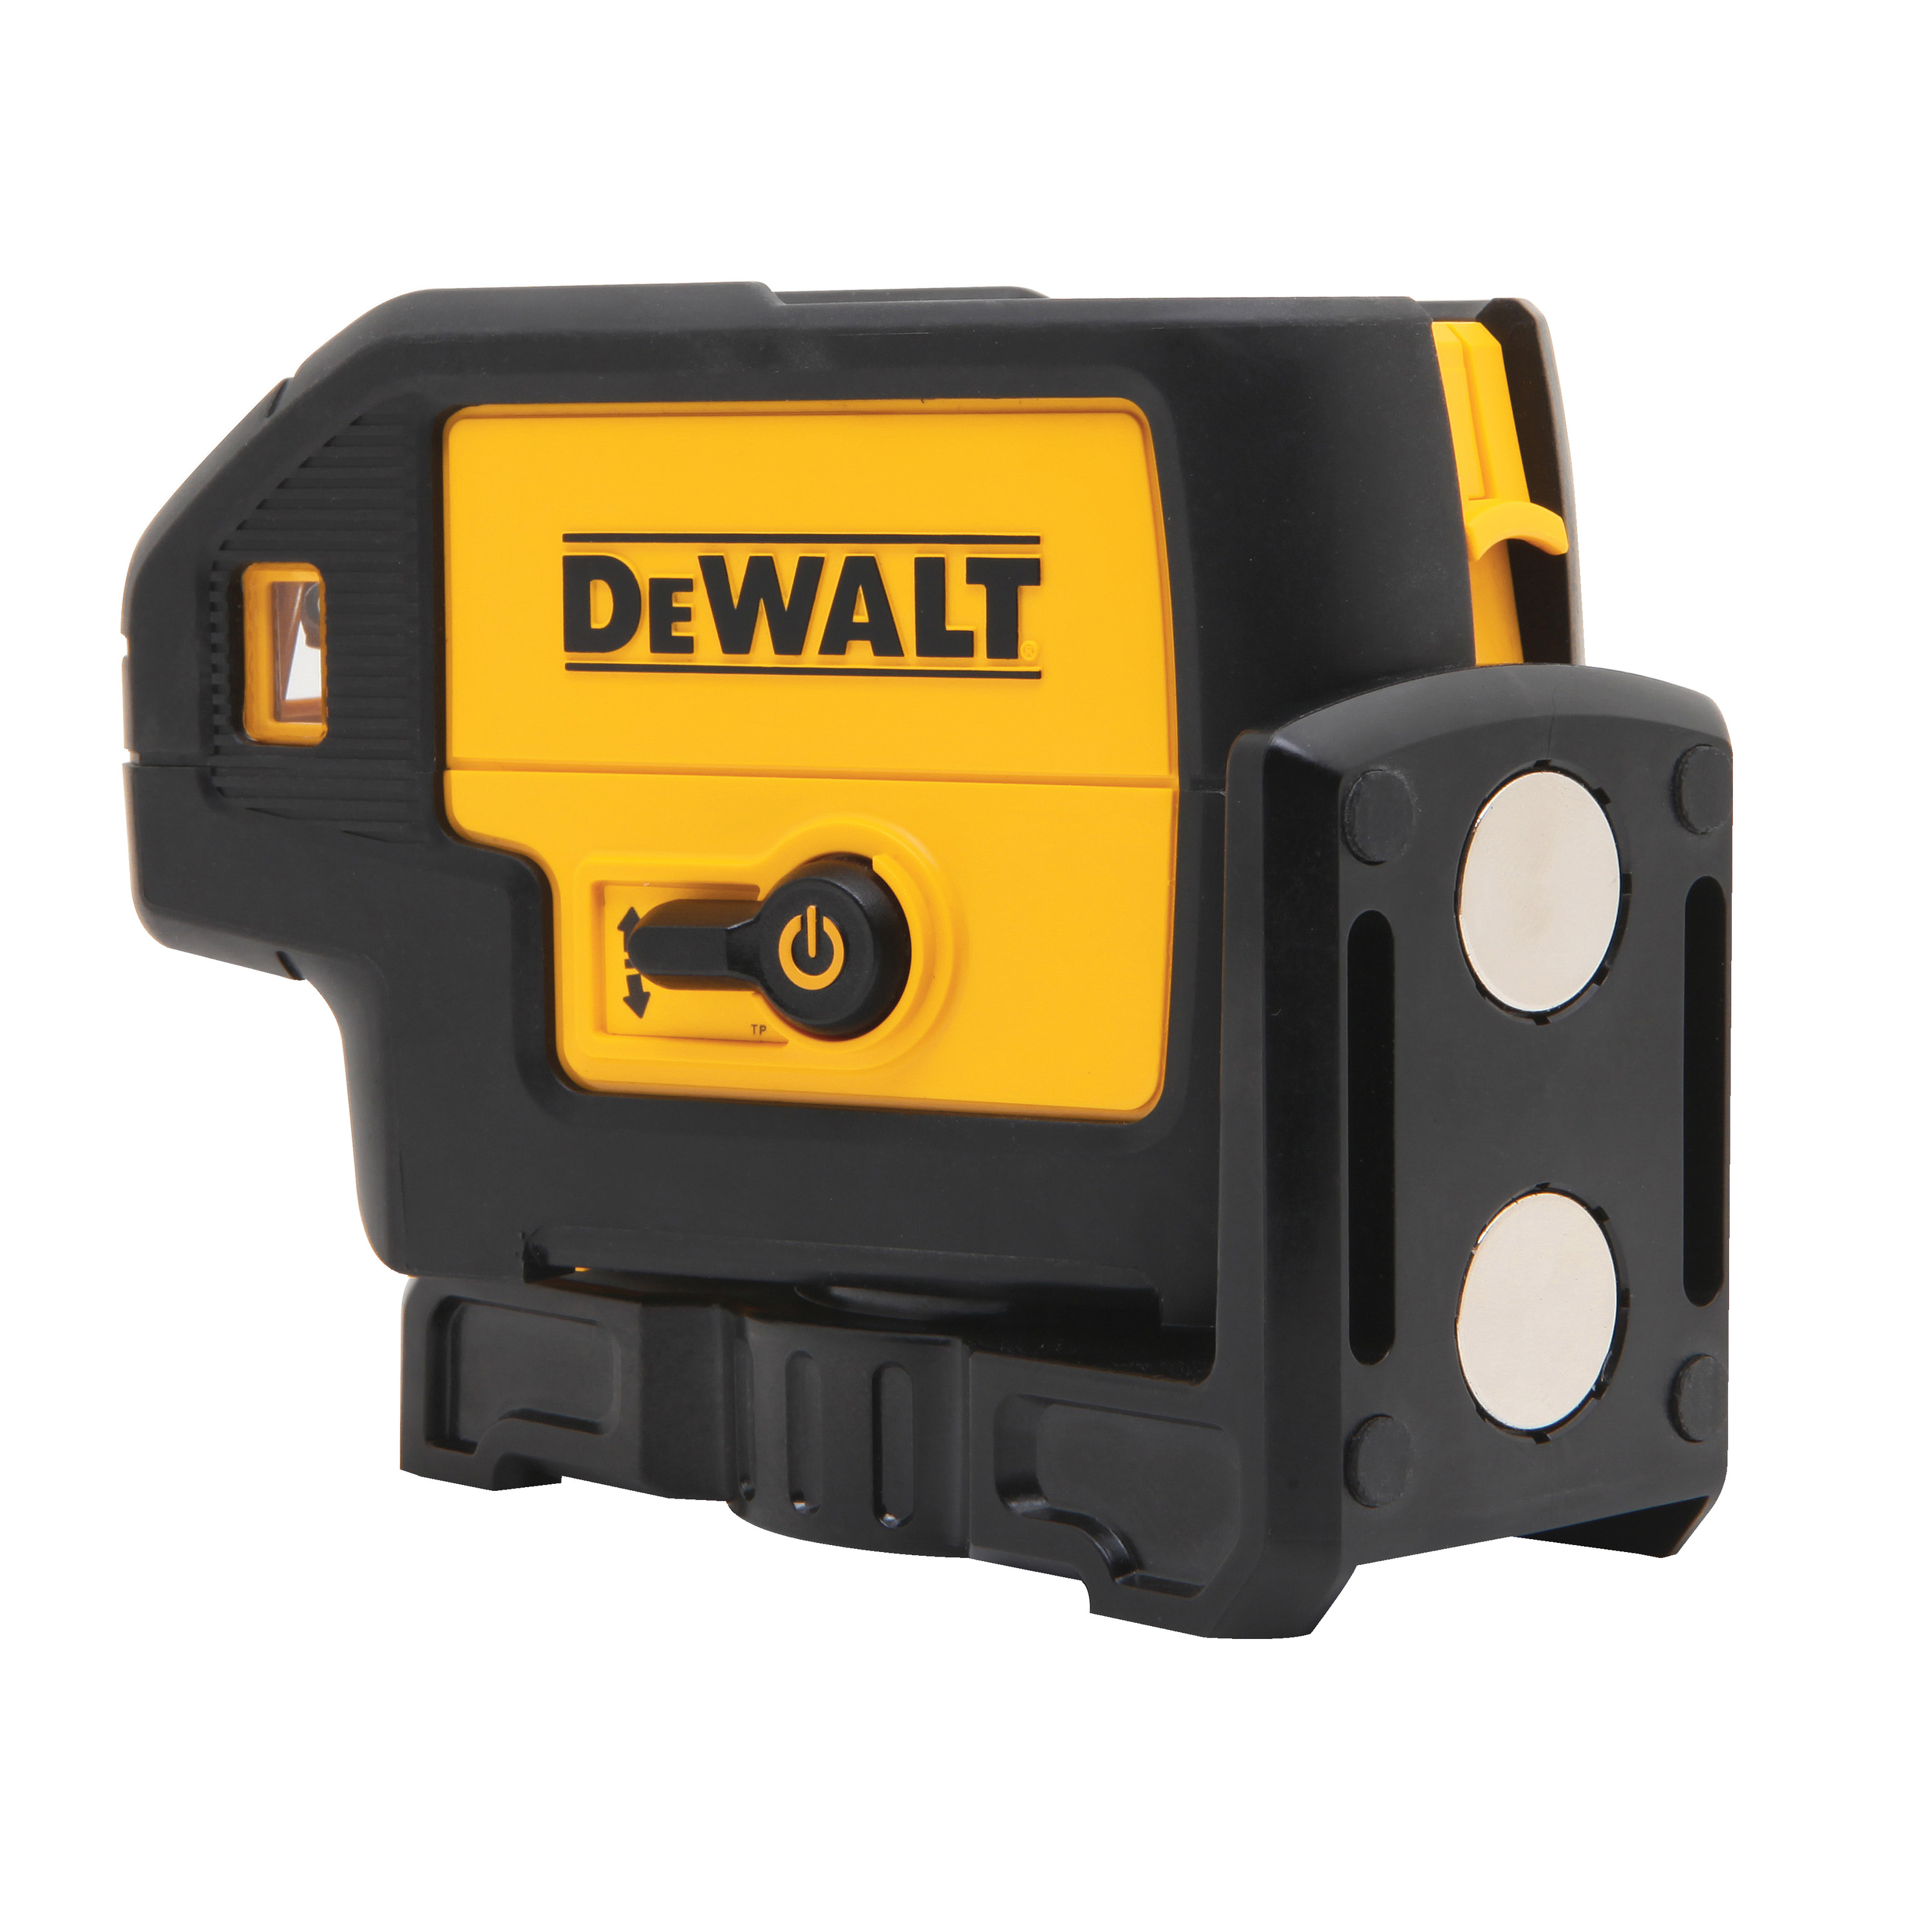 **Sale! Add to cart, save 15% more  - DeWALT® DW085K Electronic Self-Leveling Rotary Laser Level Kit, 100 ft Measuring, 1/4 in at 100 ft Accuracy, +/-4 deg Auto Leveling, 5 Beams